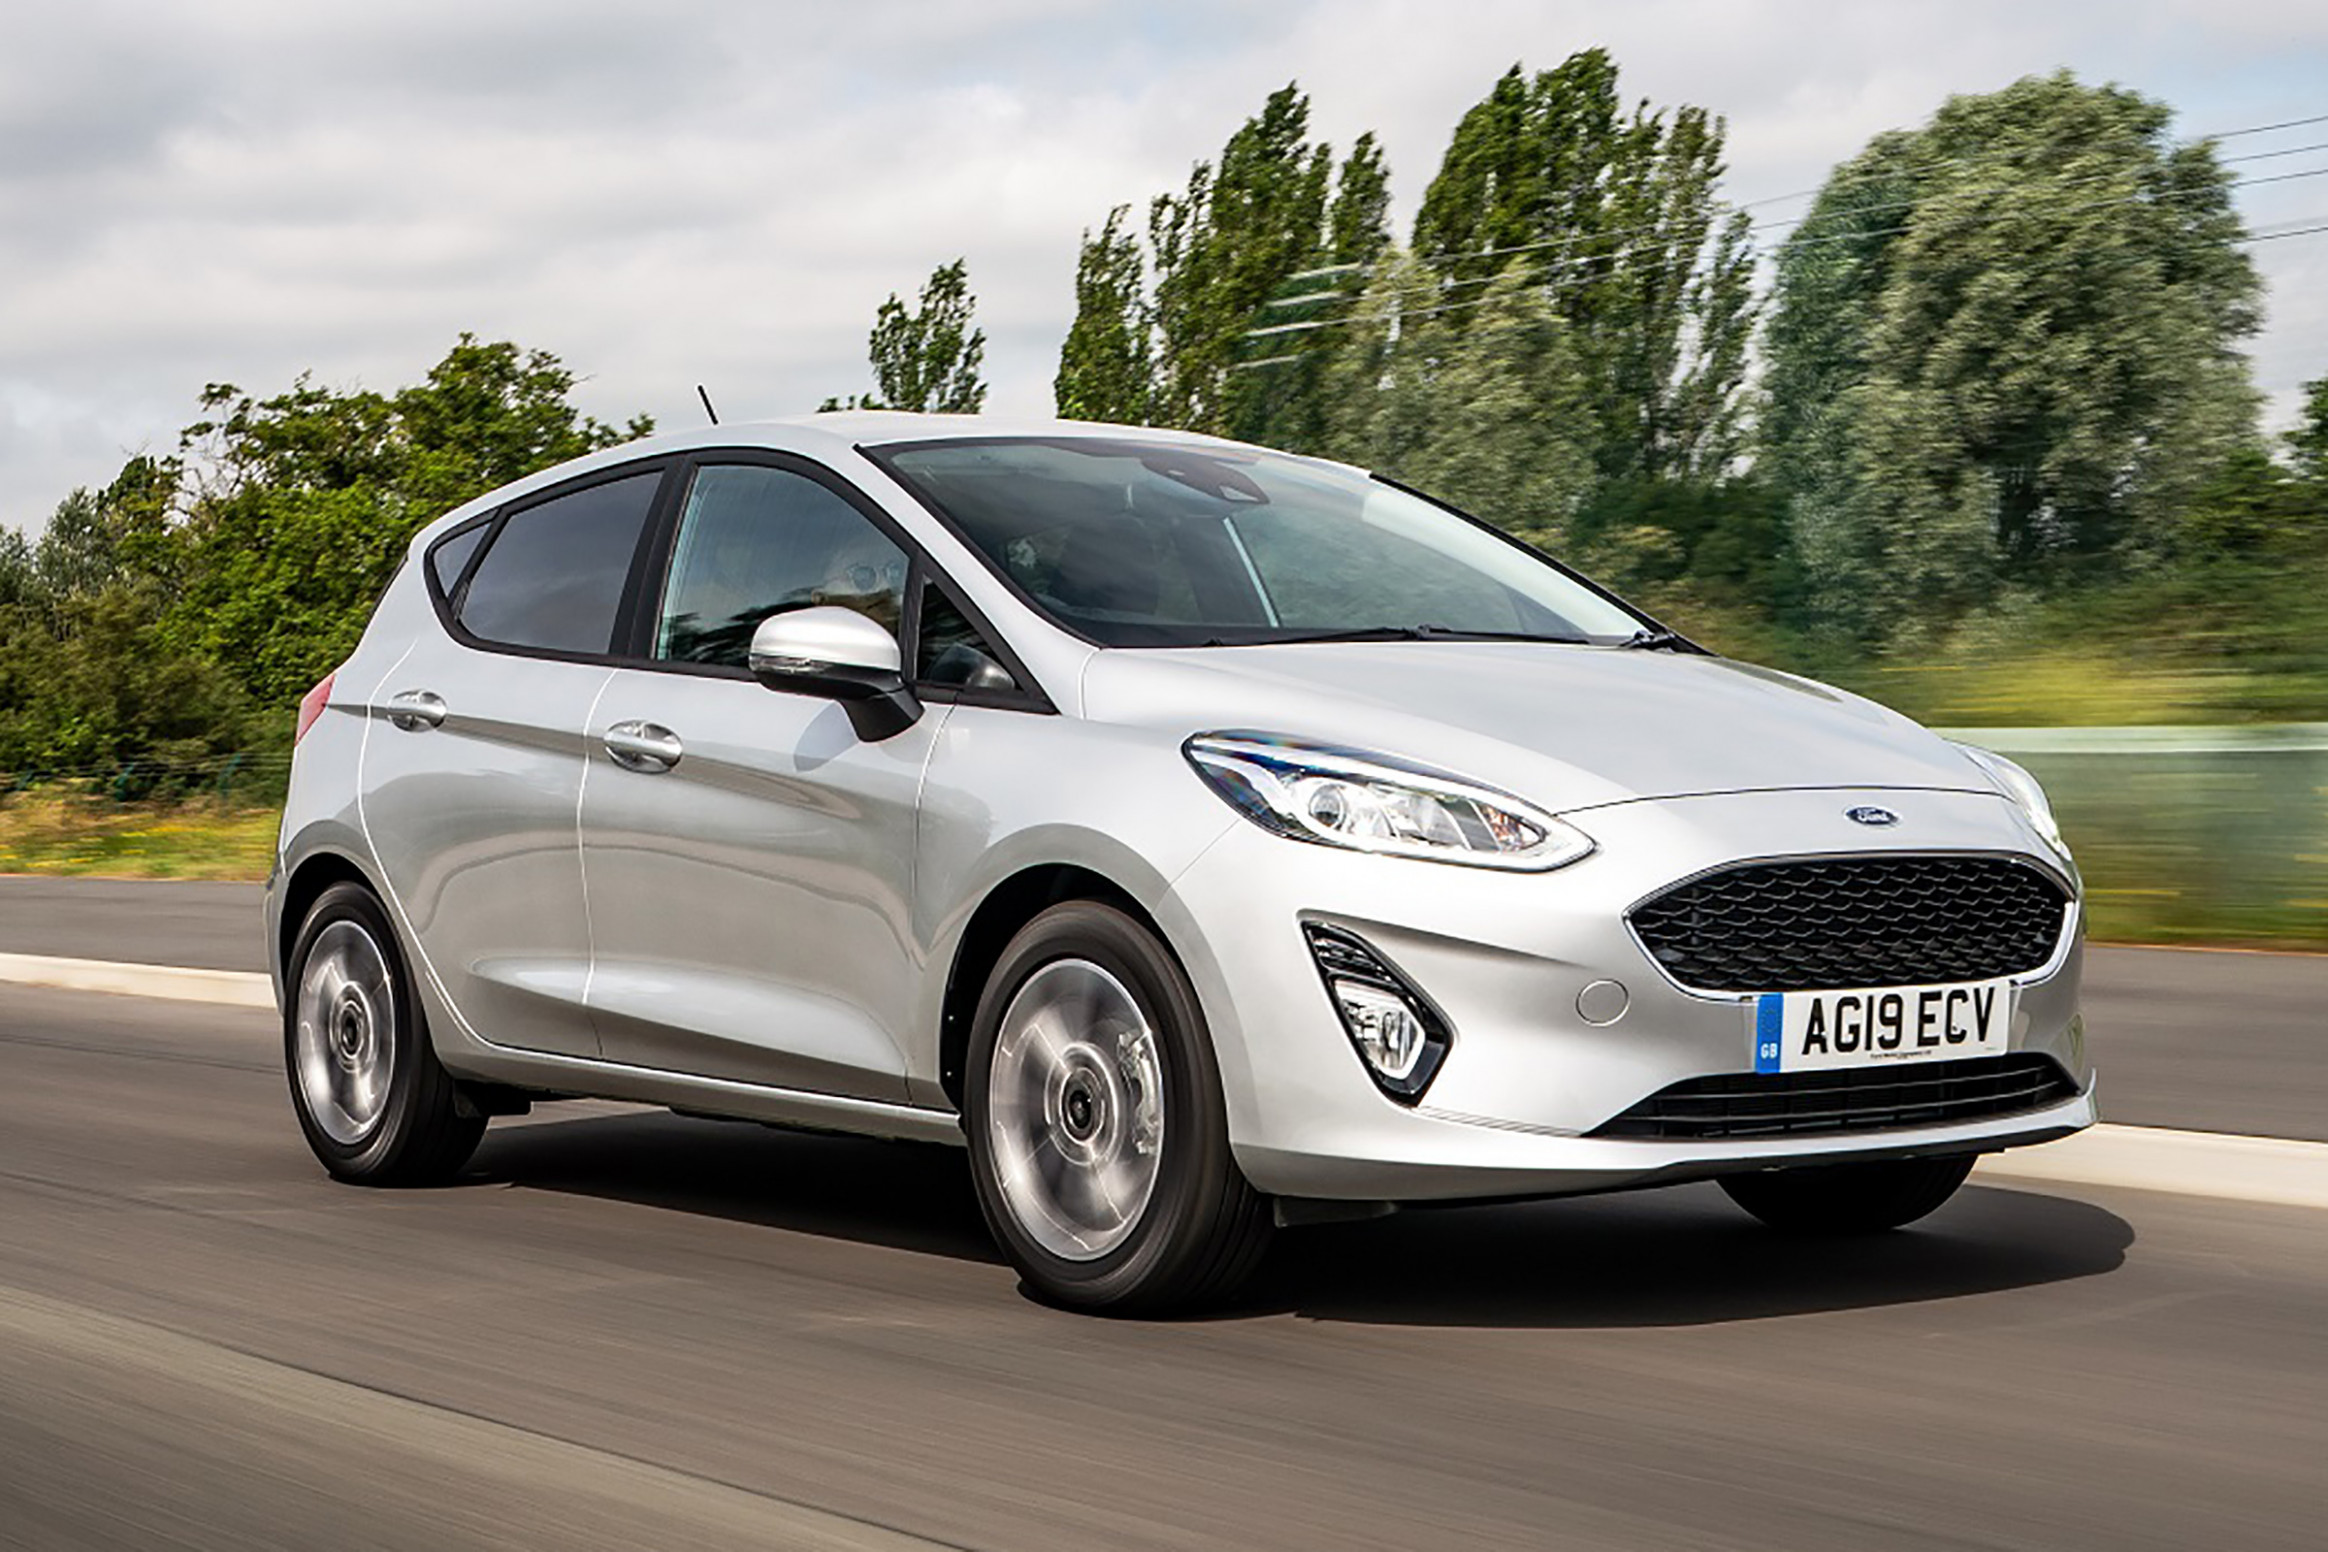 New Ford Fiesta Trend 7 review | Auto Express - ford fiesta zetec 2020 review